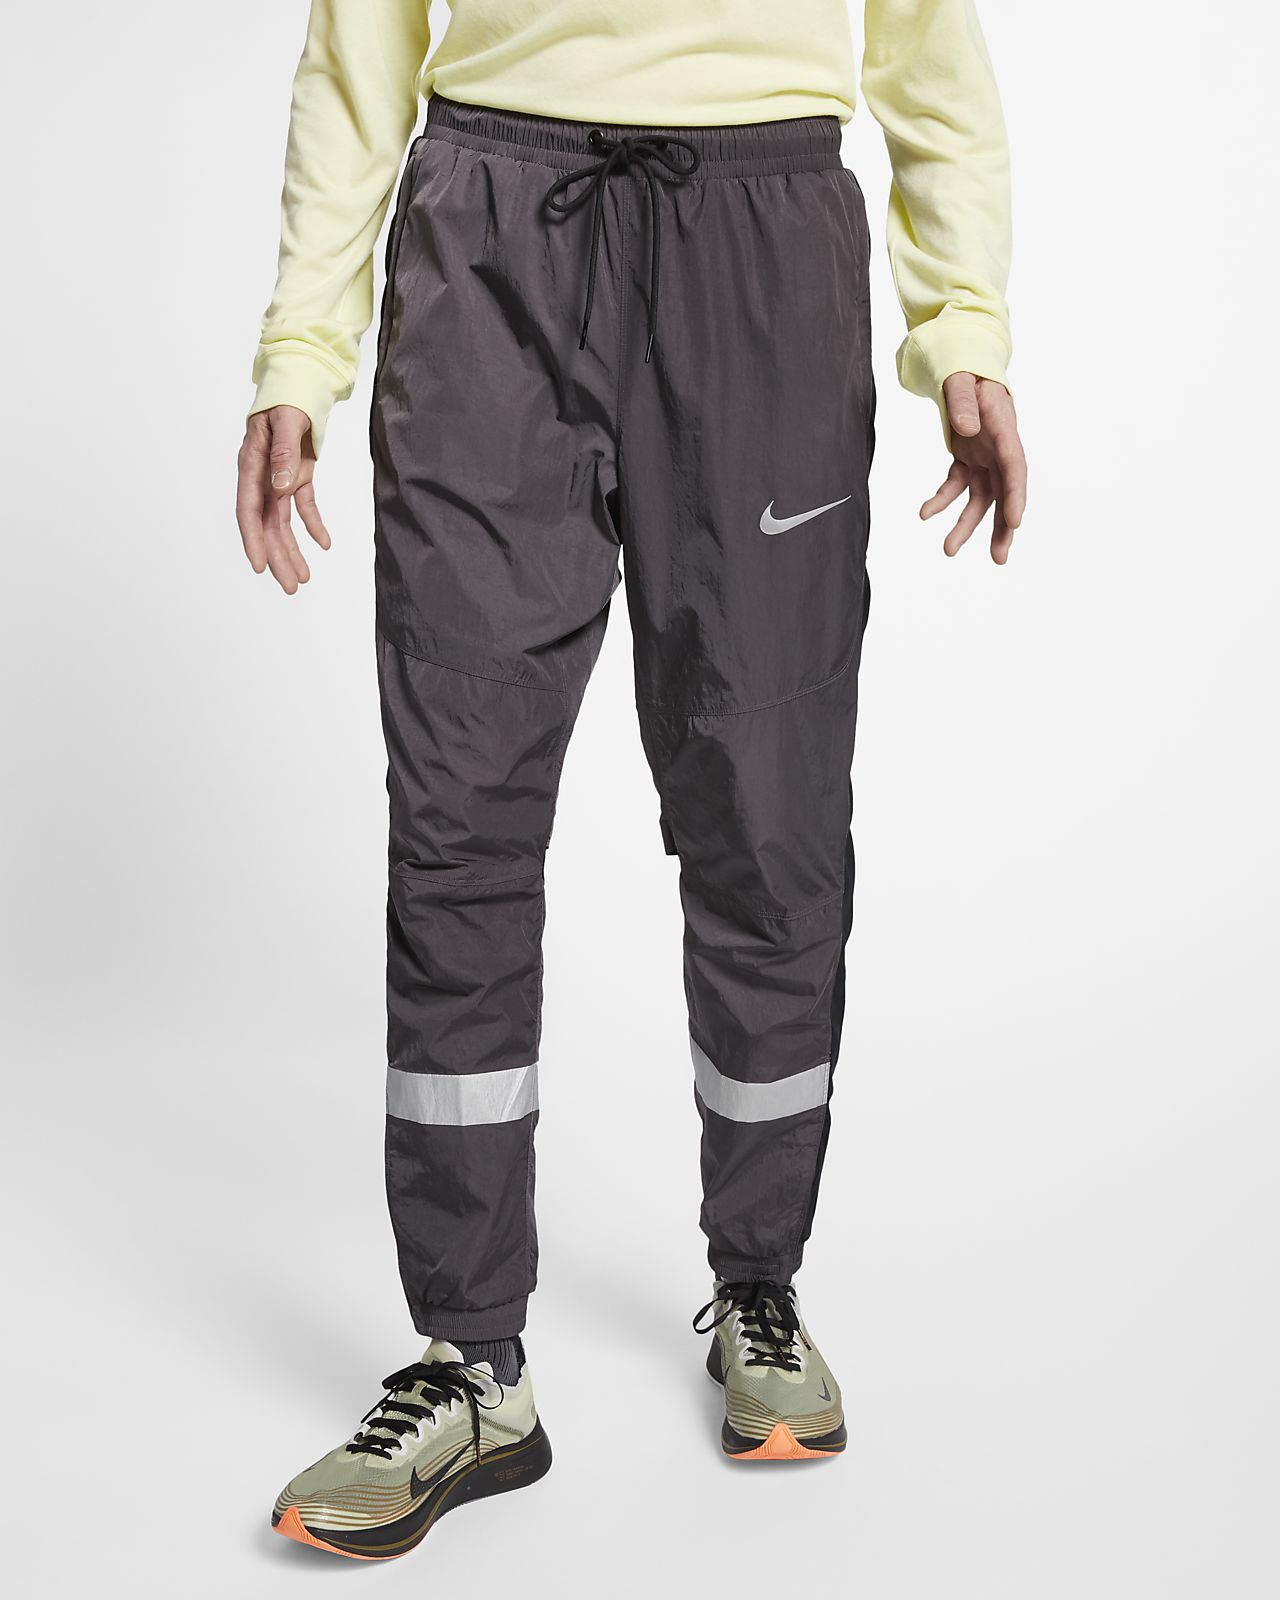 77b32a6dc Nike Men's Running Track Trousers. Nike.com IE